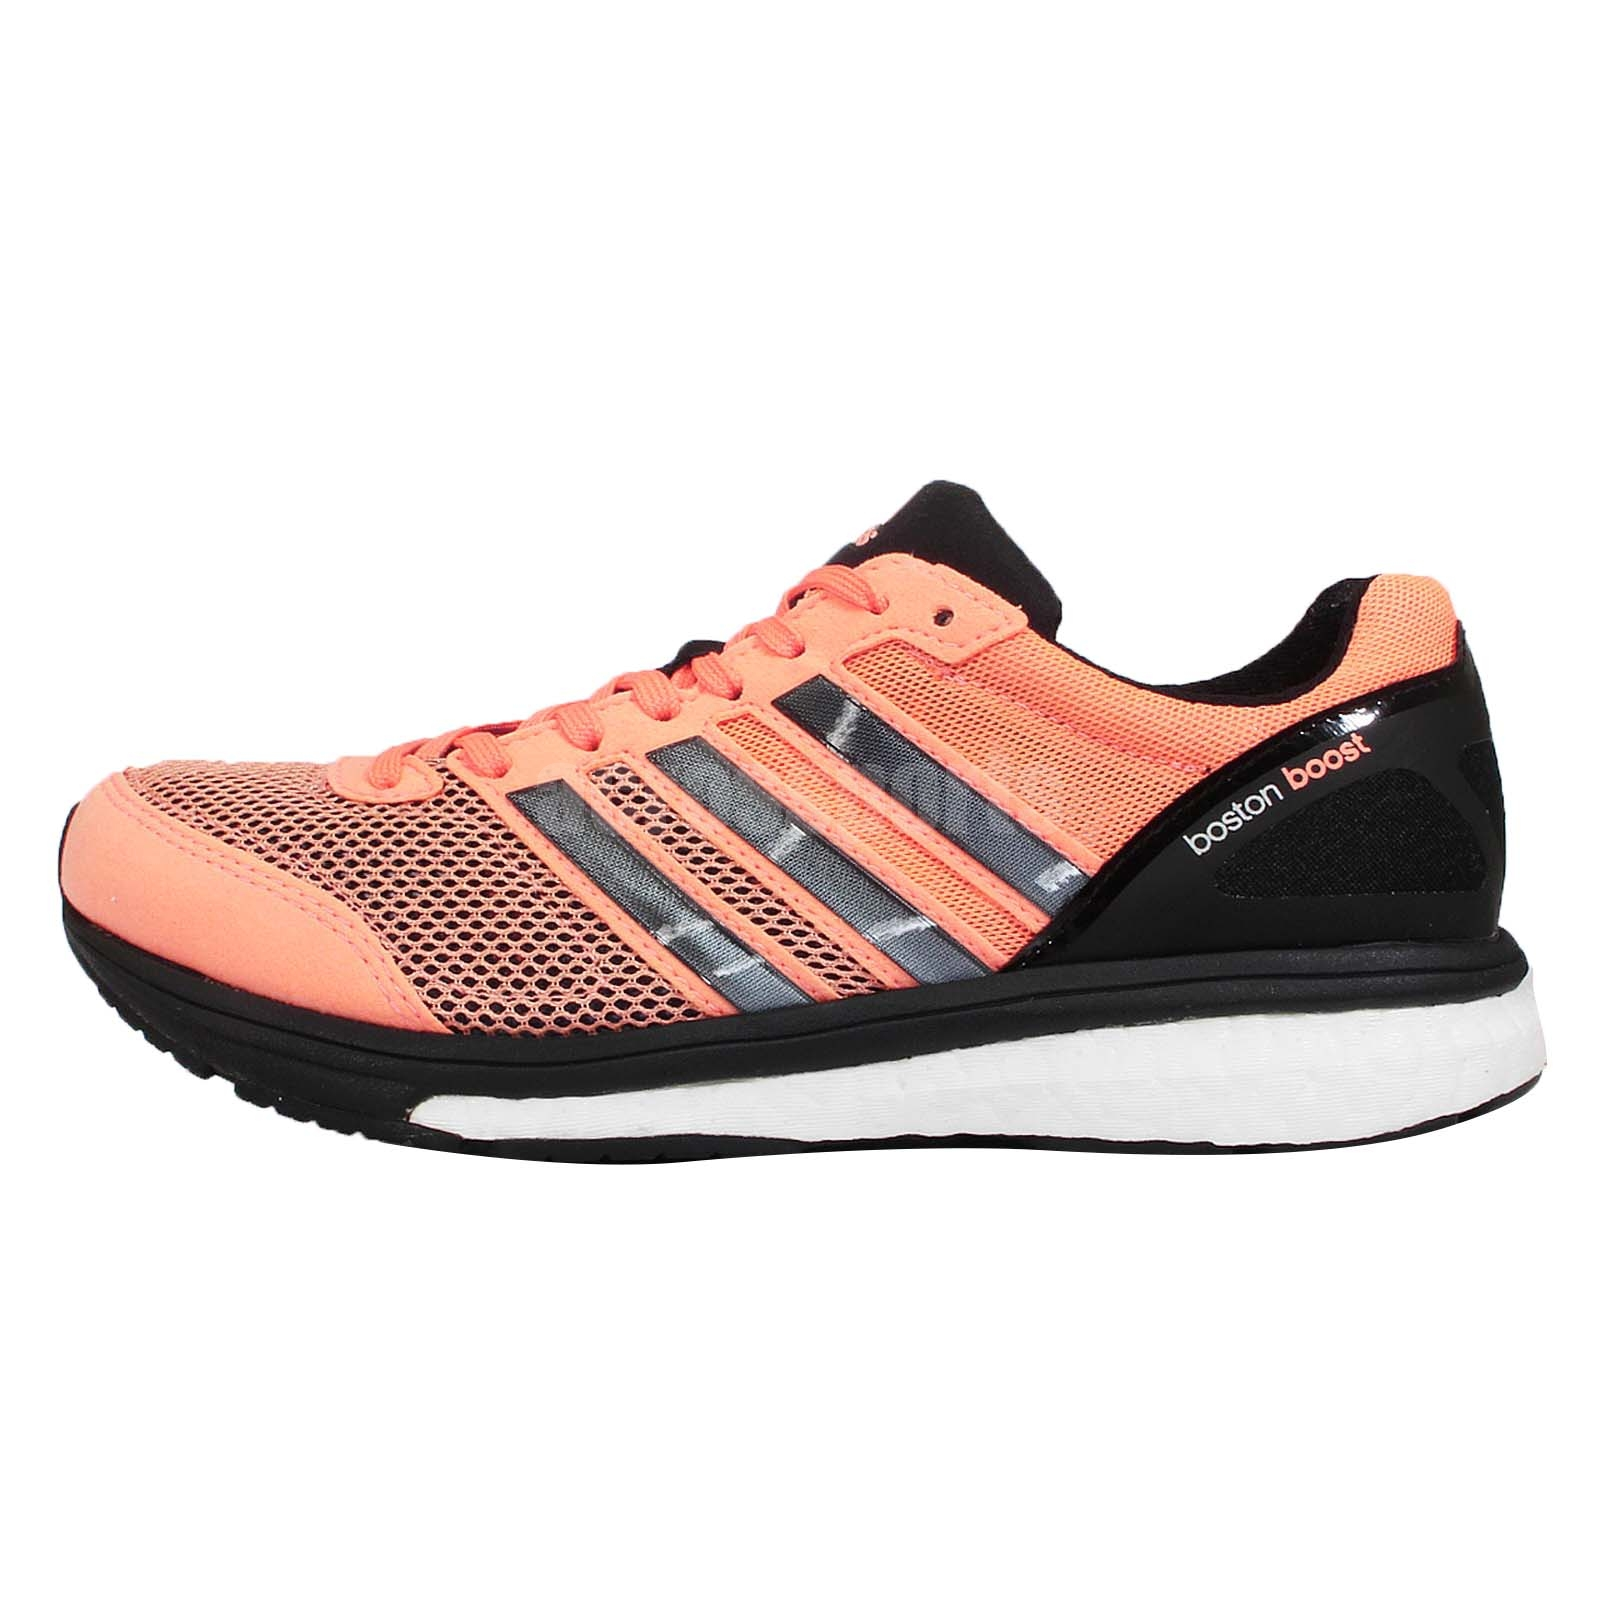 Addidas Mens Shoes Black Withn Yellow Strioe